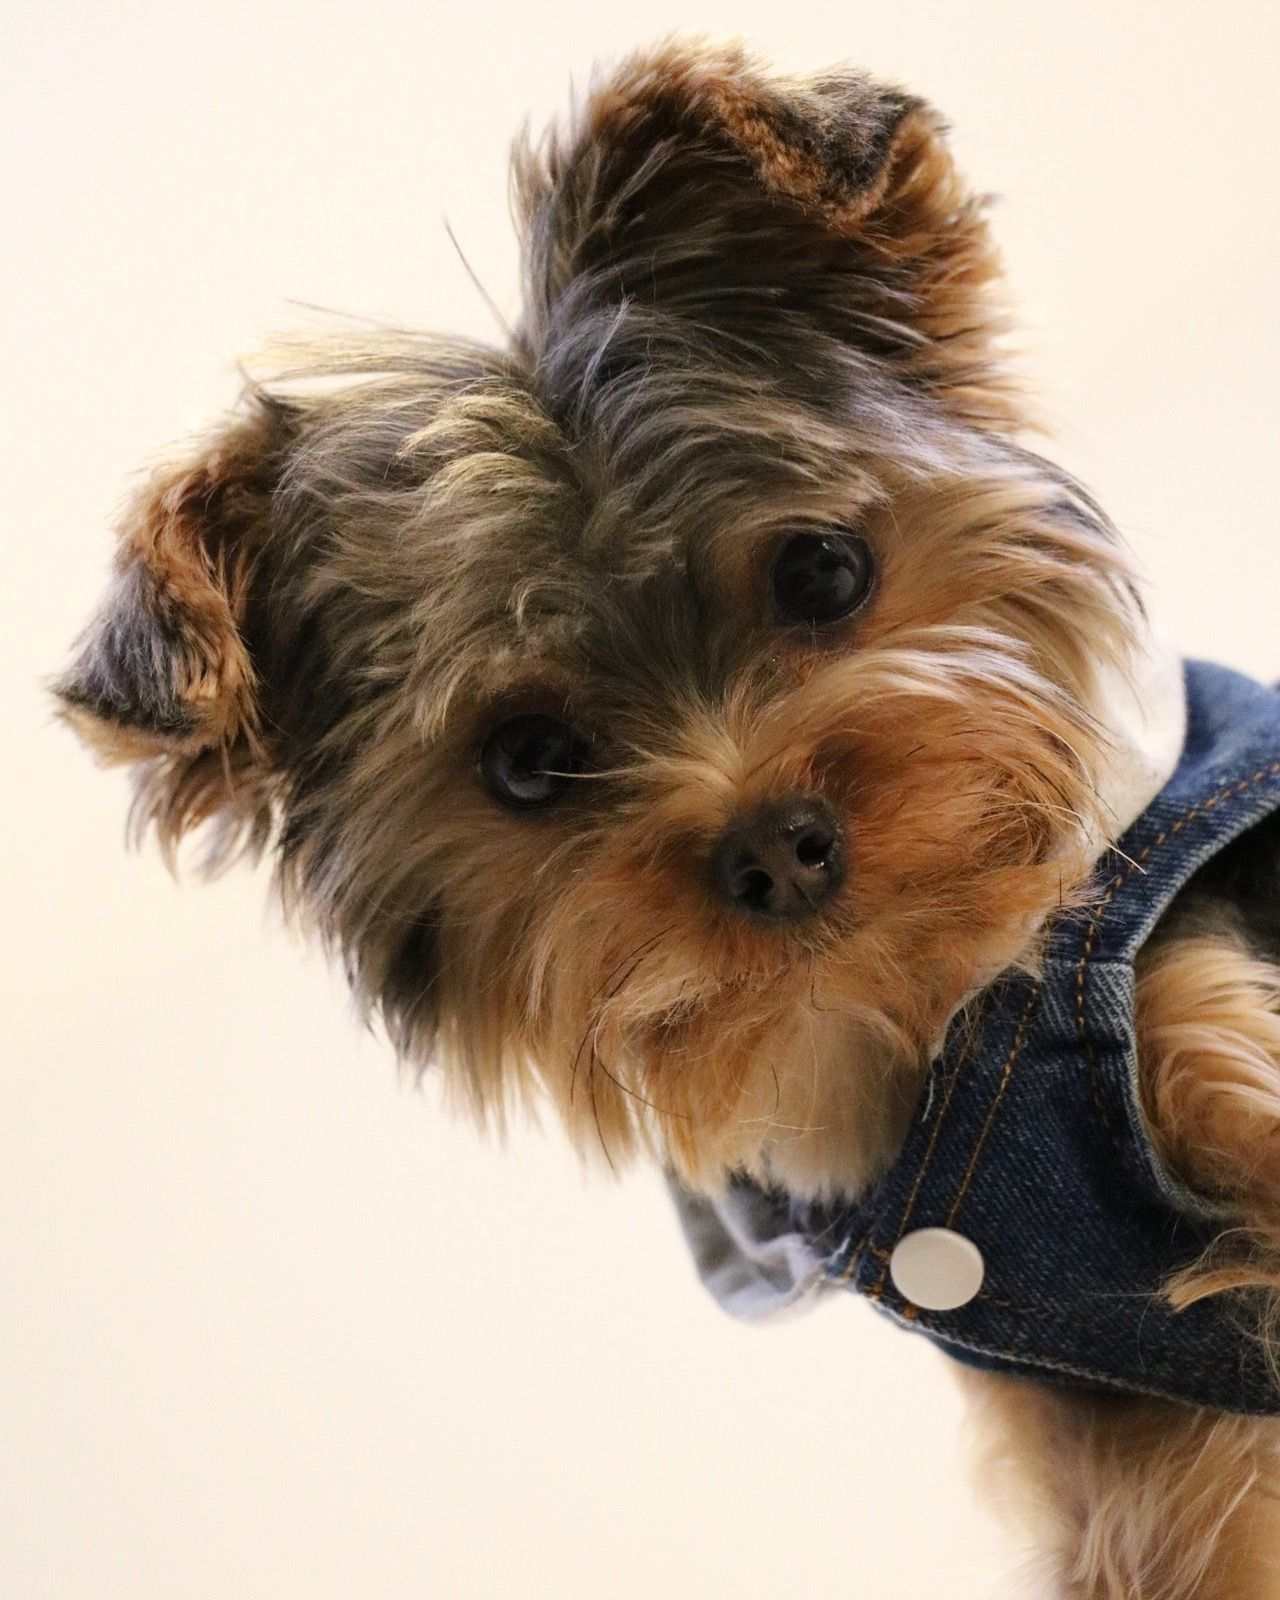 Adorbs Puppy Dog Boutique Chic Yorkshire Terrier Yorkie Yorkshire Terrier Puppies